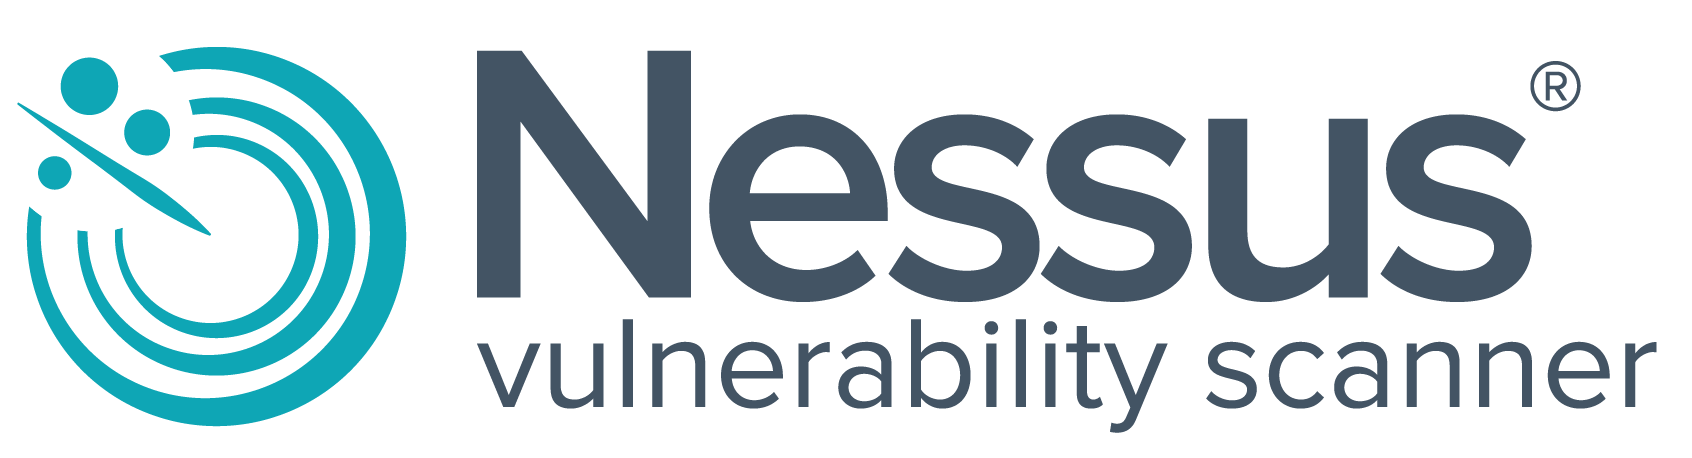 Installing Nessus in Kali Linux 1 0 6 | LINUX DIGEST